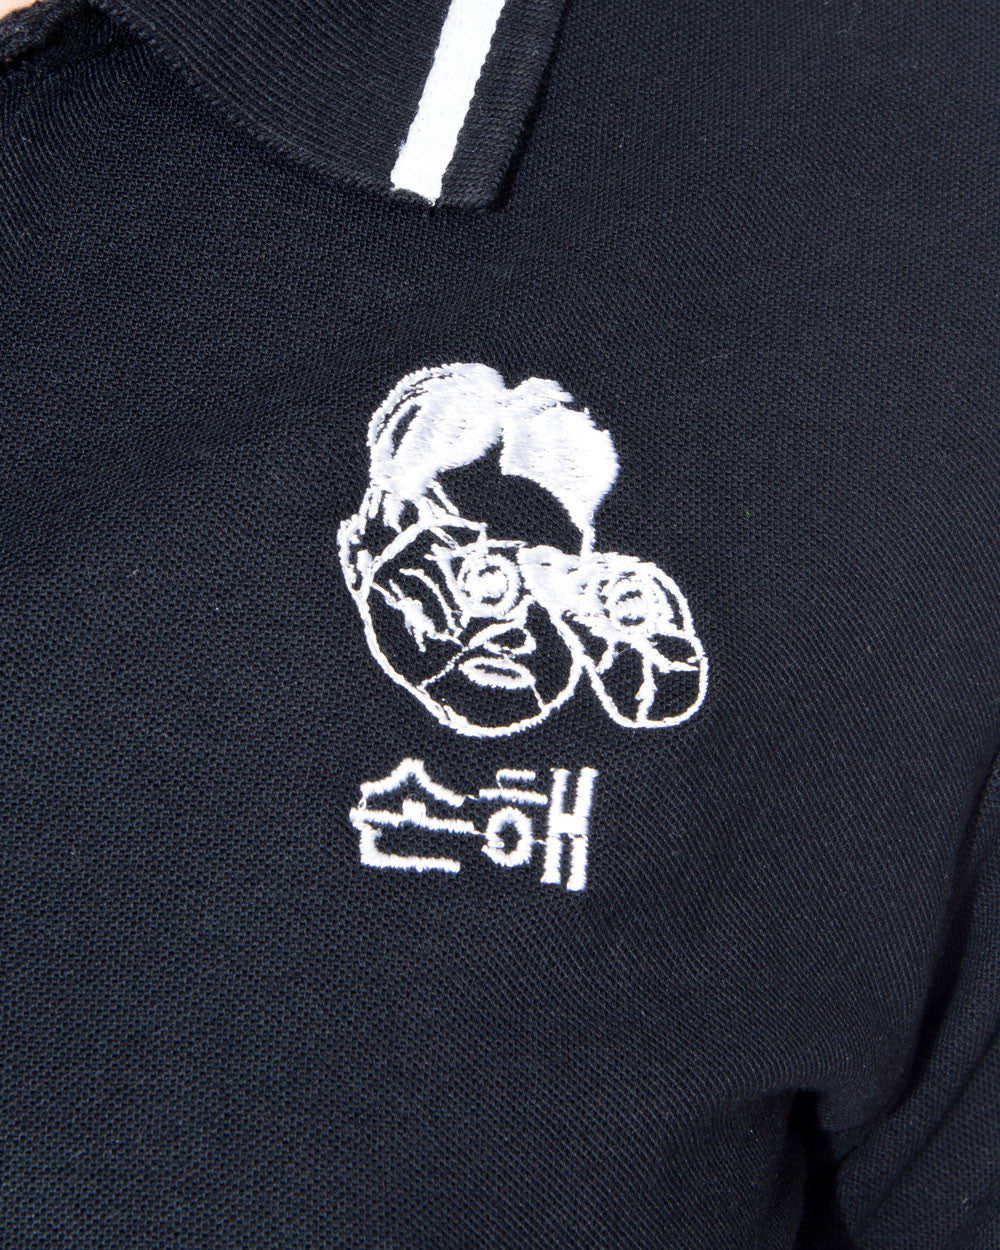 PYONGYANG LEADER CROPPED BLACK POLO TEE